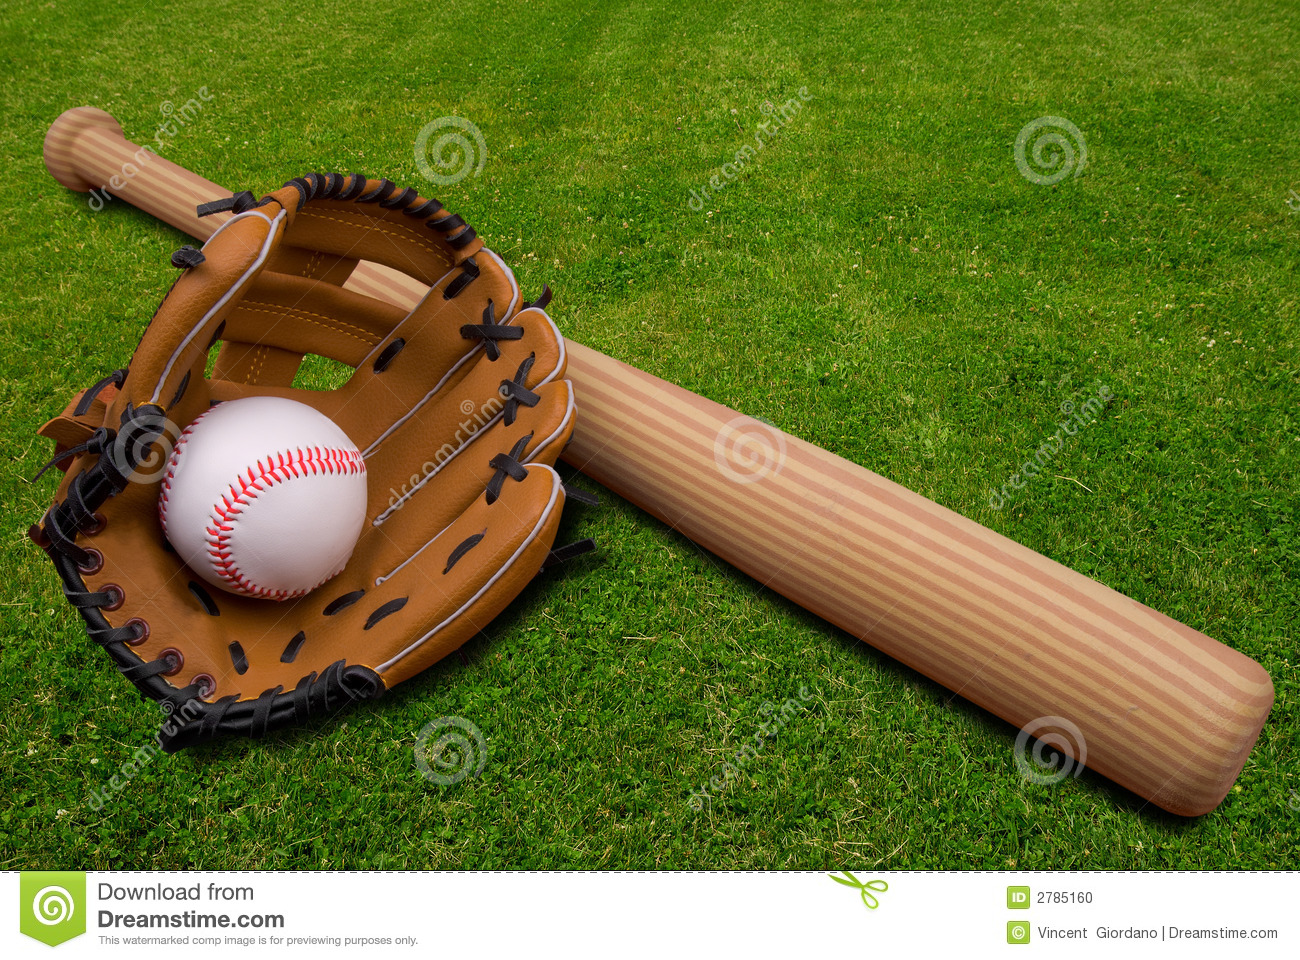 Baseball glove,bat and ball on